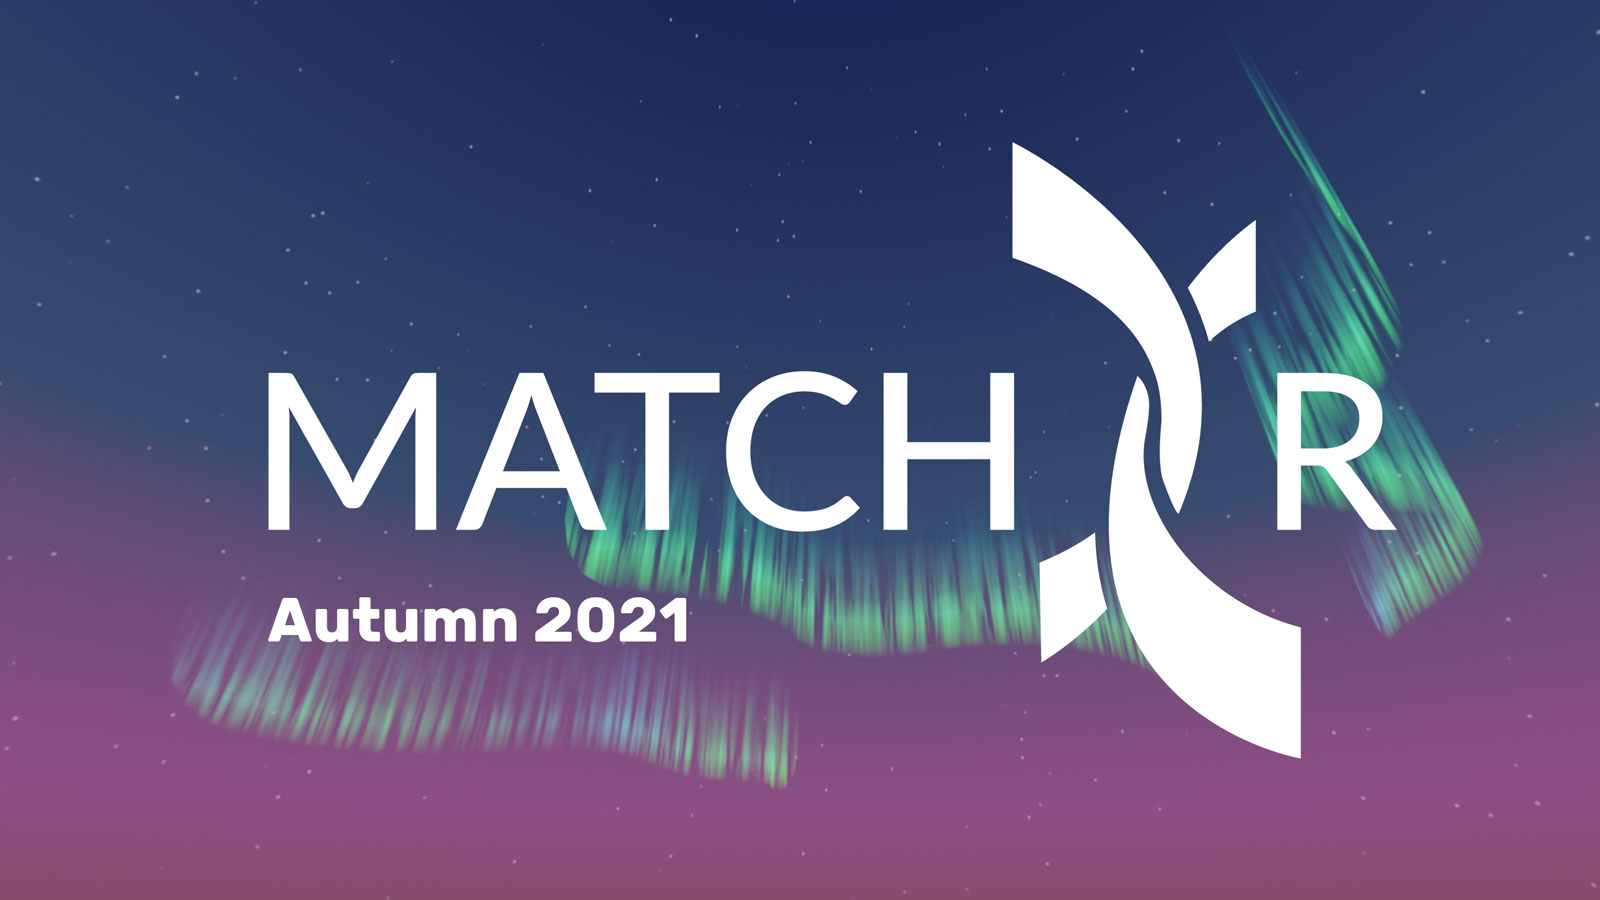 """White Match XR logo and text saying """"Autumn 2021"""" overlayed on a virtual blue-purple sky with northern lights."""